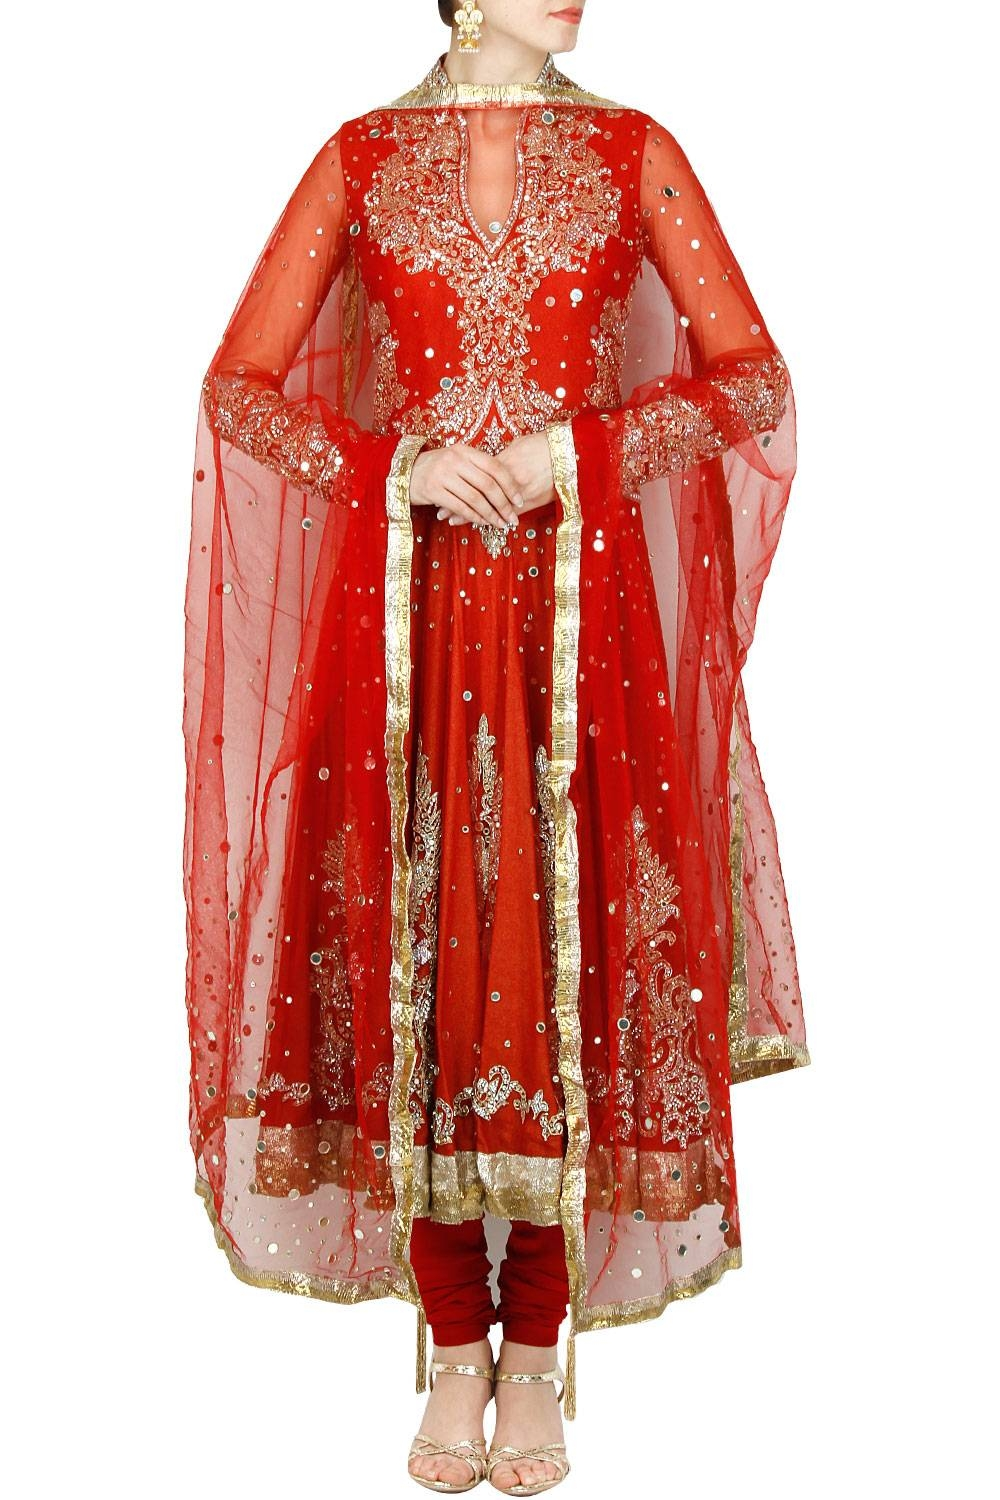 Manav Gangwani Indian Designer Online Latest Collection Of Anarkalis intended for Red Mirrors (Image 16 of 25)